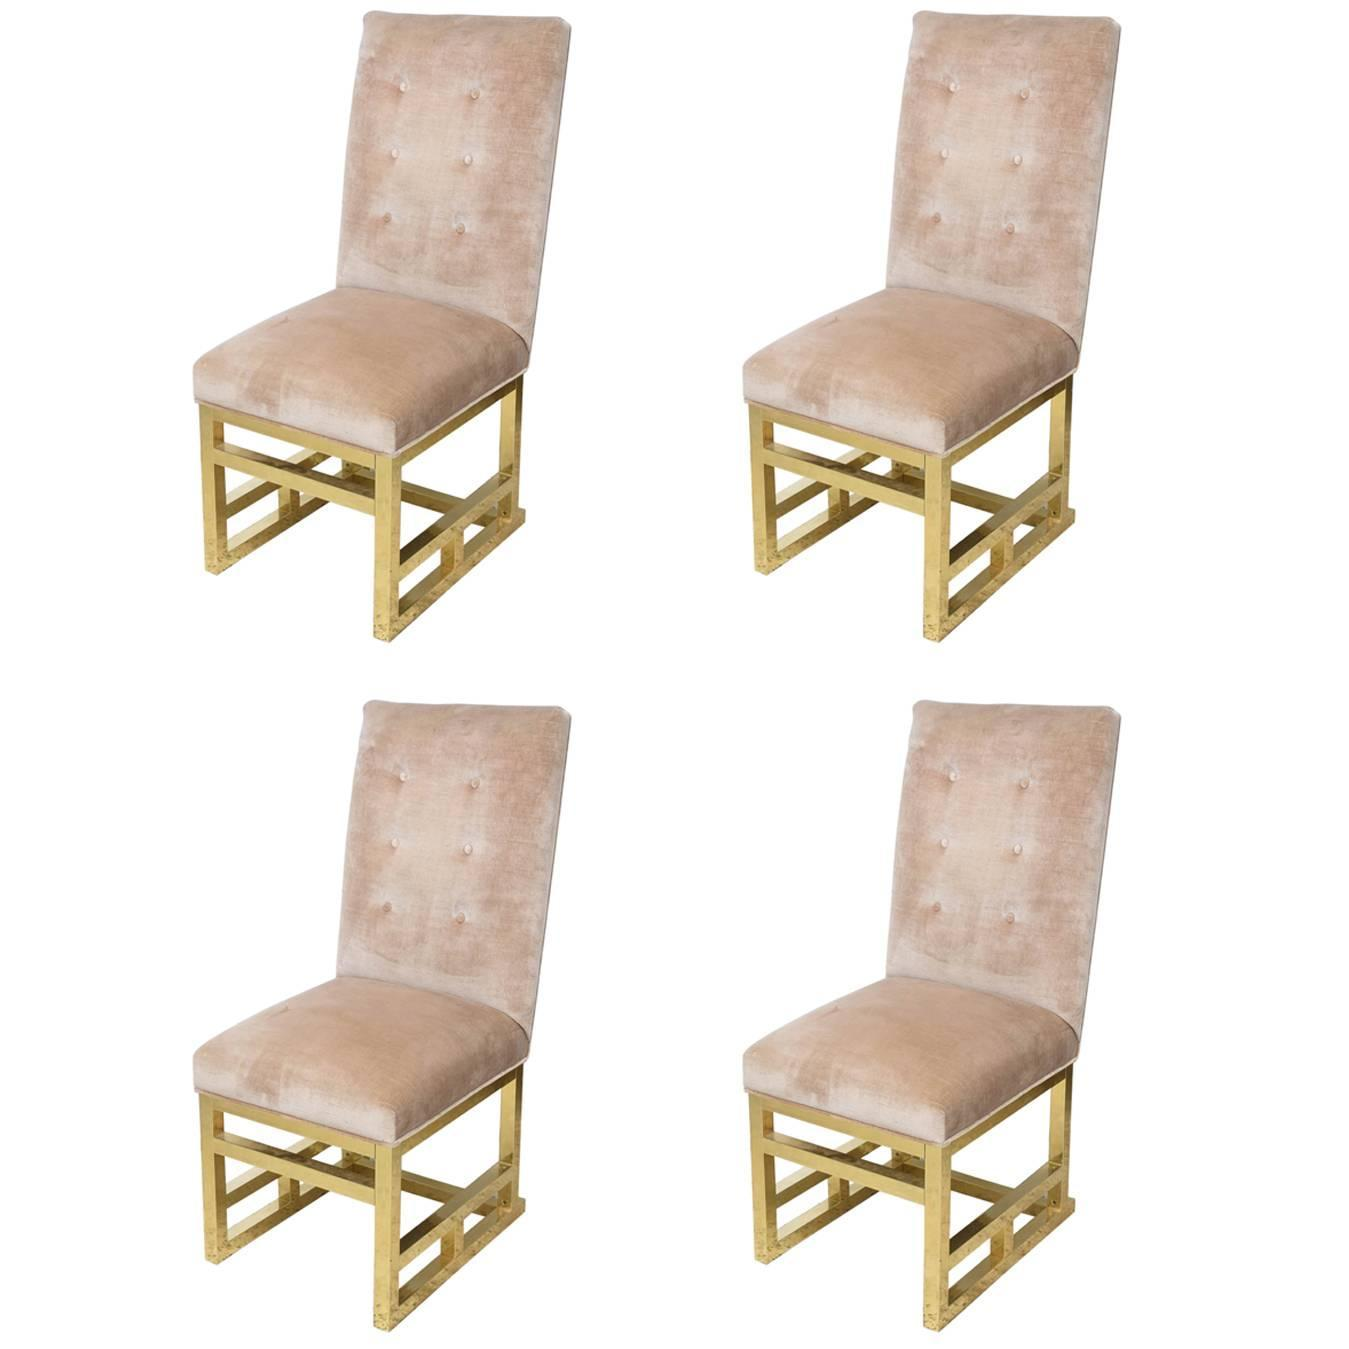 DIA Brass Dining Chairs 1970s USA at 1stdibs